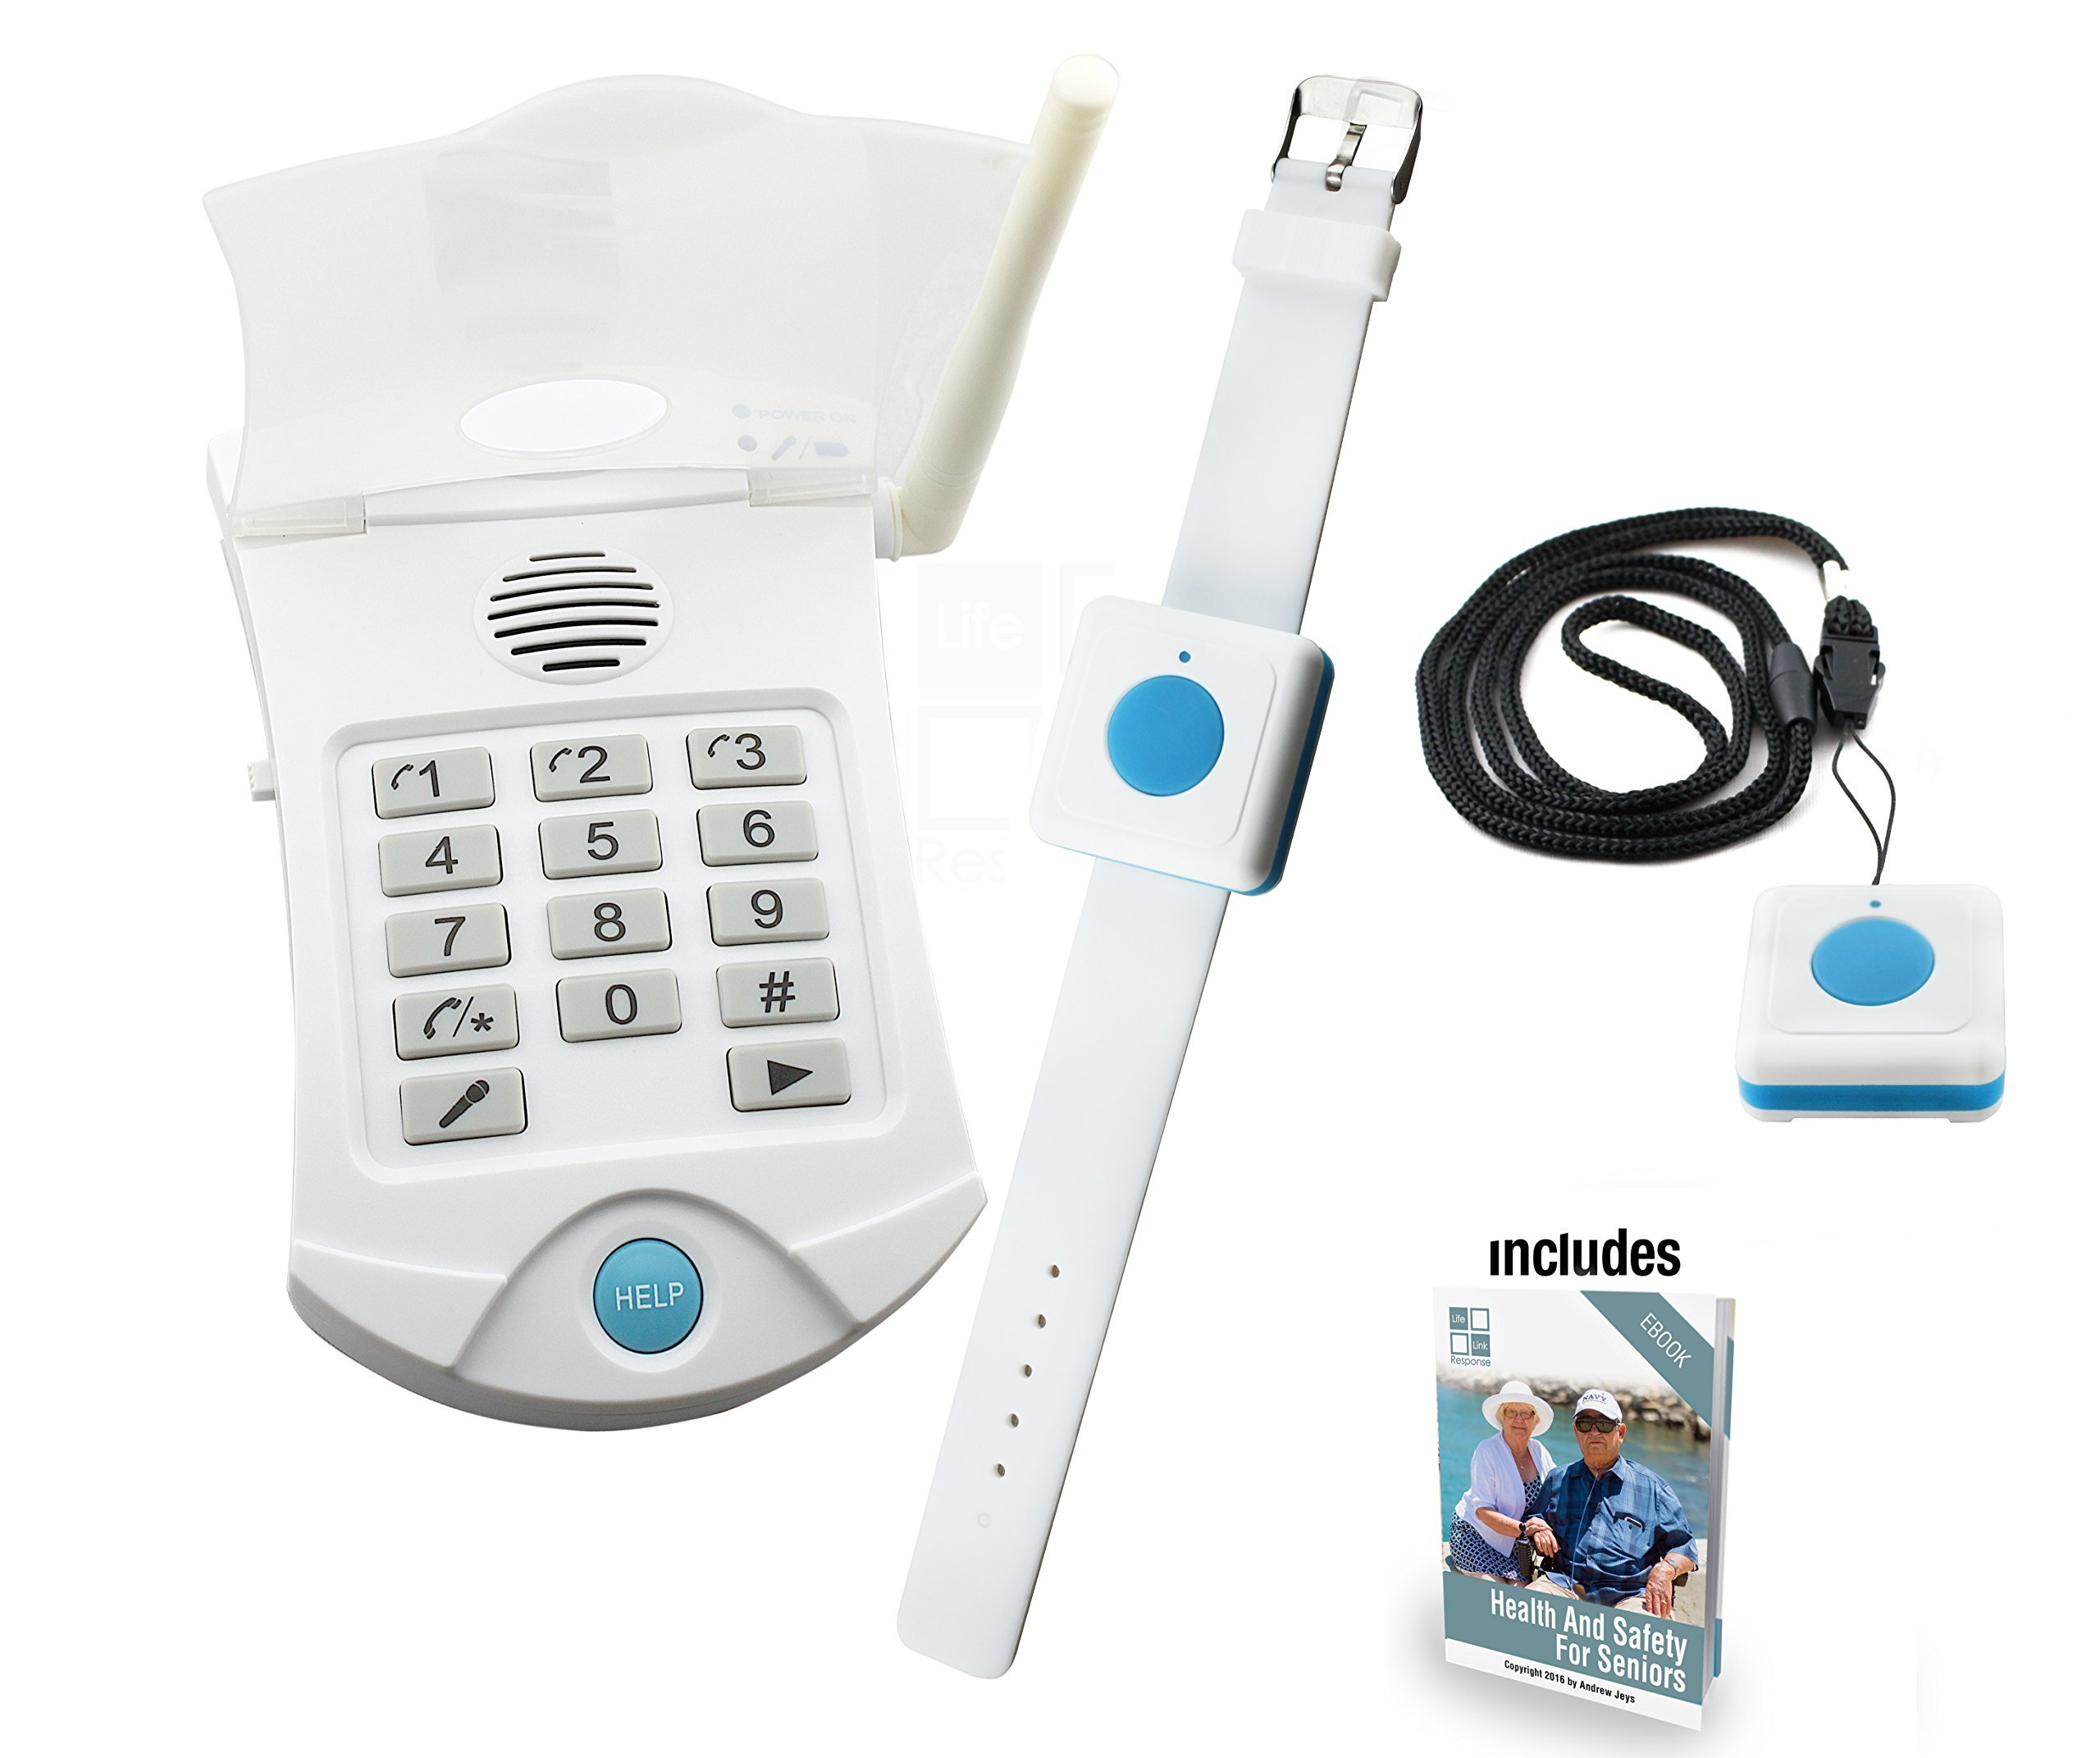 Medical Alert Systems for Seniors No Monthly Fee medical alert system - no monthly charges - Includes WATERPROOF Pendant and Wrist Wireless Help Buttons - Elderly Home Help Alarm Life Monitor by Life Link Response